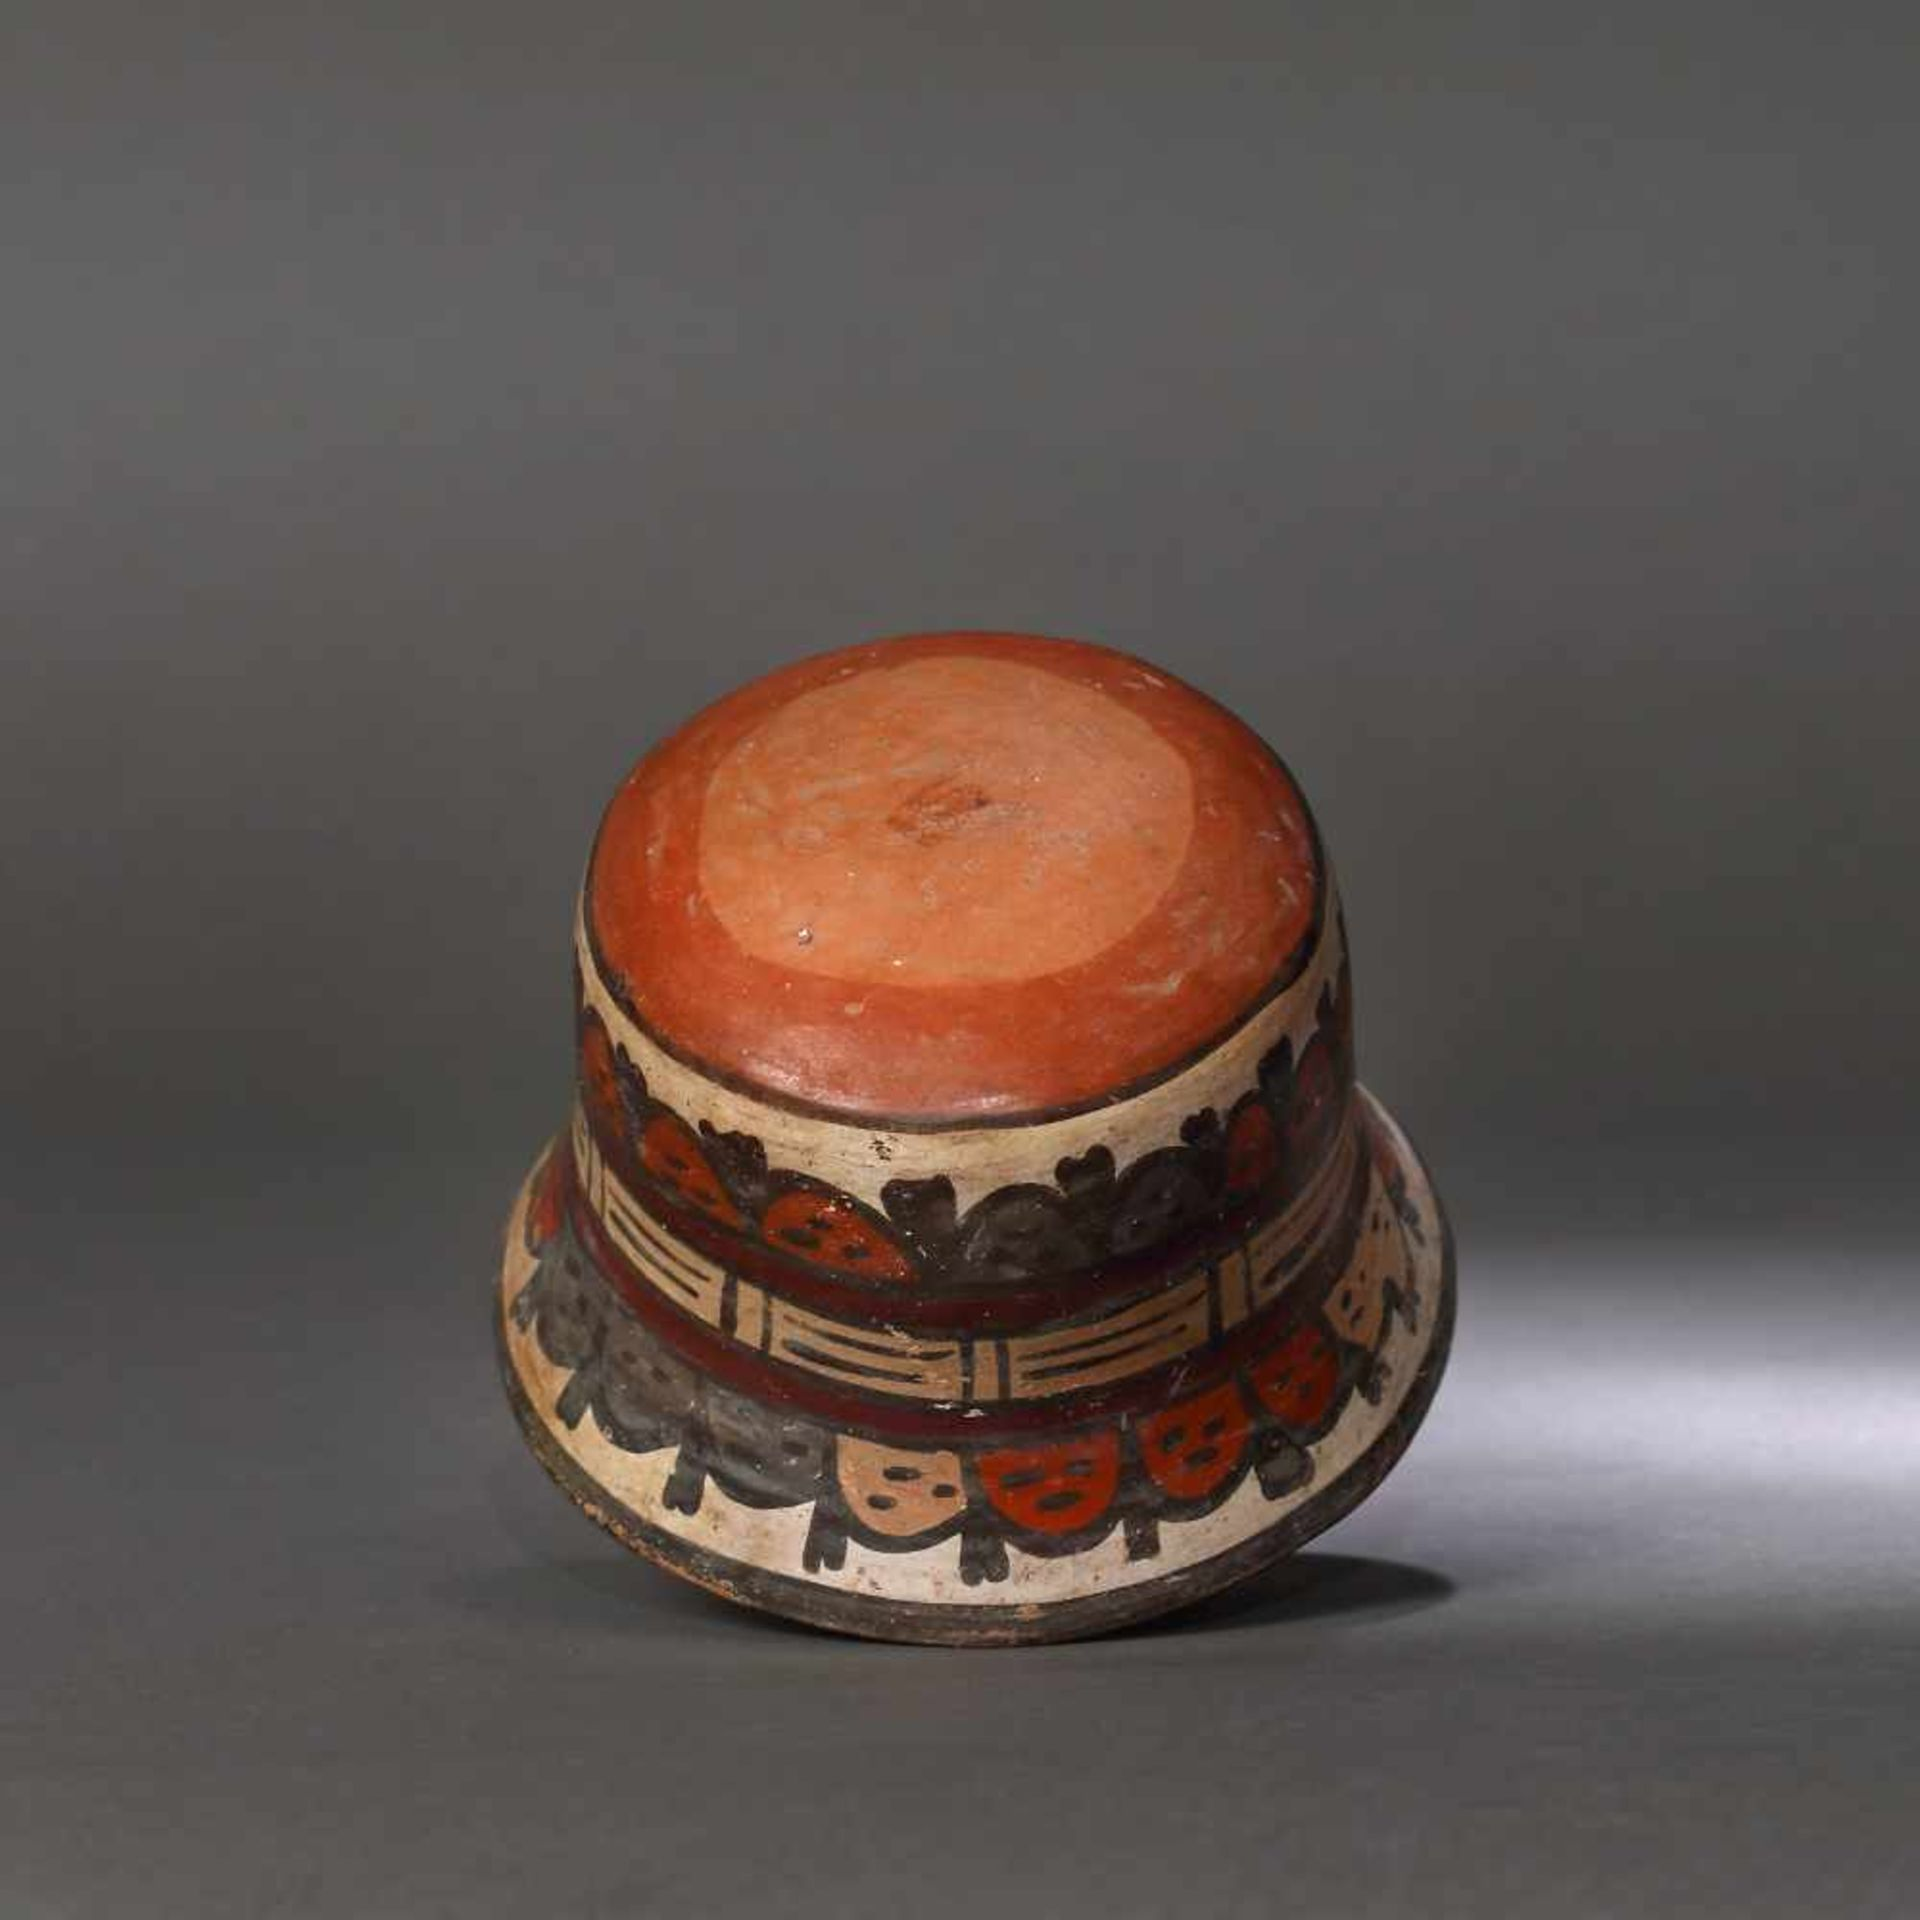 Painted ceramic vessel, decorated with beheaded heads, Nazca culture, Peru, approx. 1,350 years old, - Bild 3 aus 5